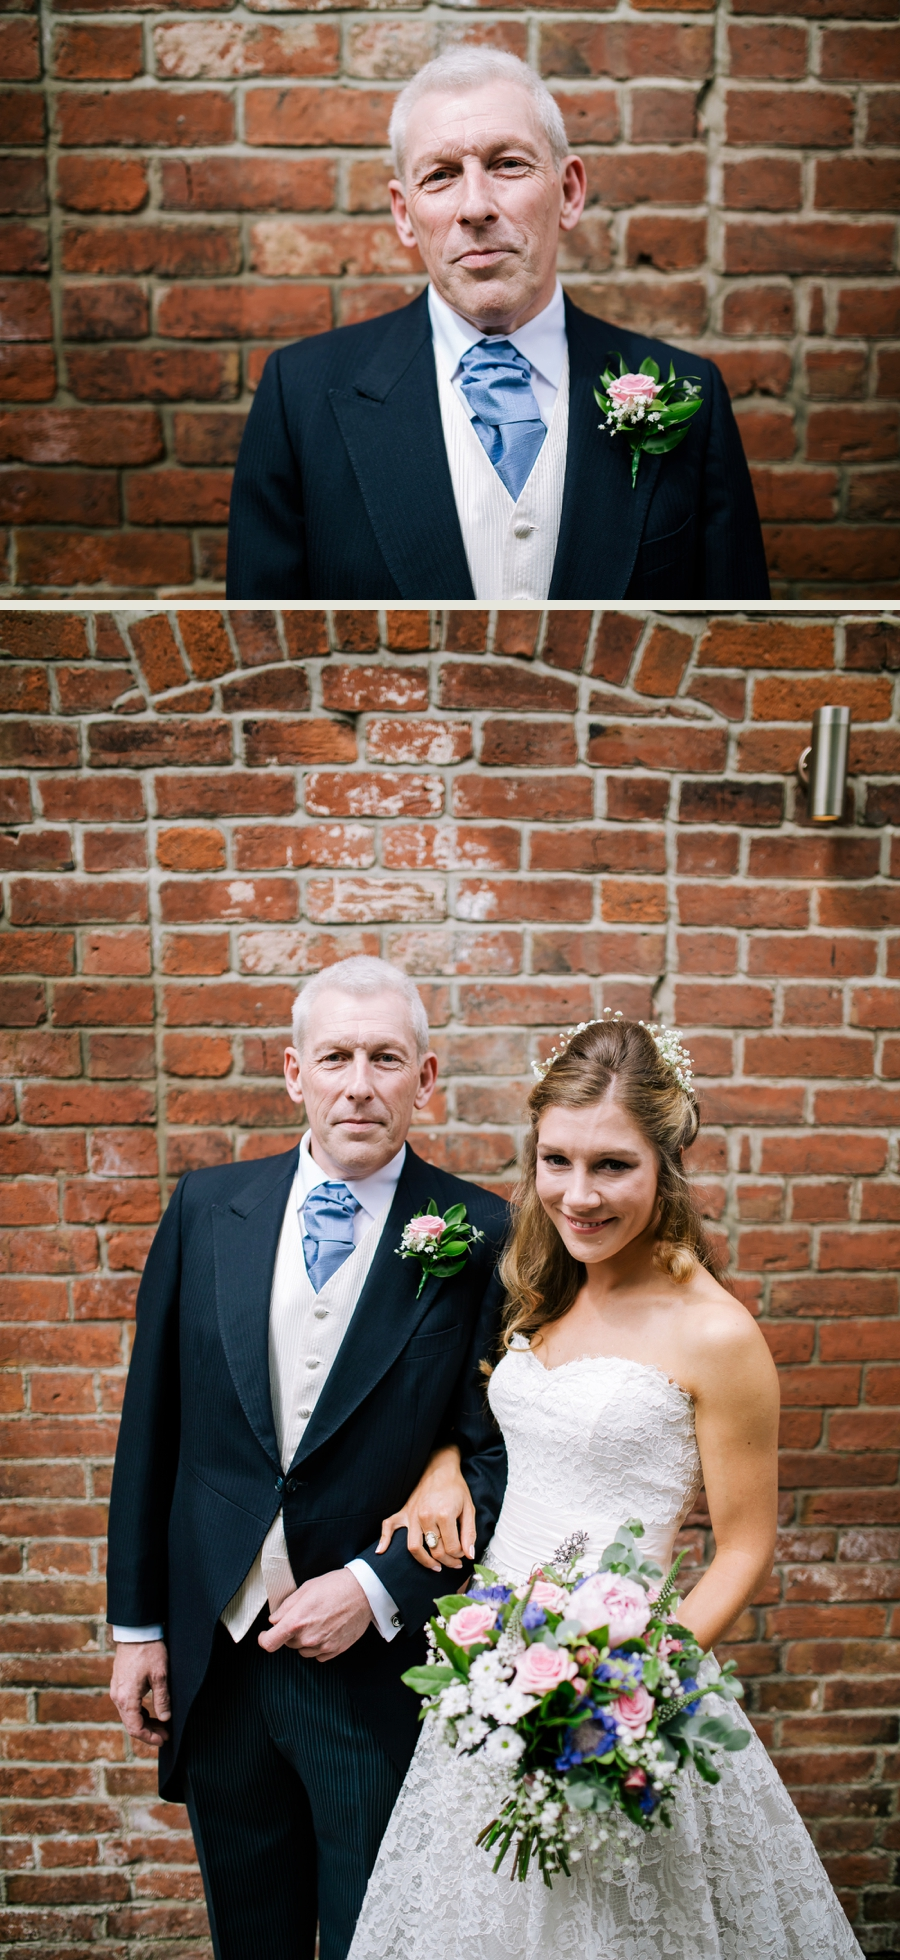 Somerset wedding photographer Packington Moor Wedding Emily and Lee 13